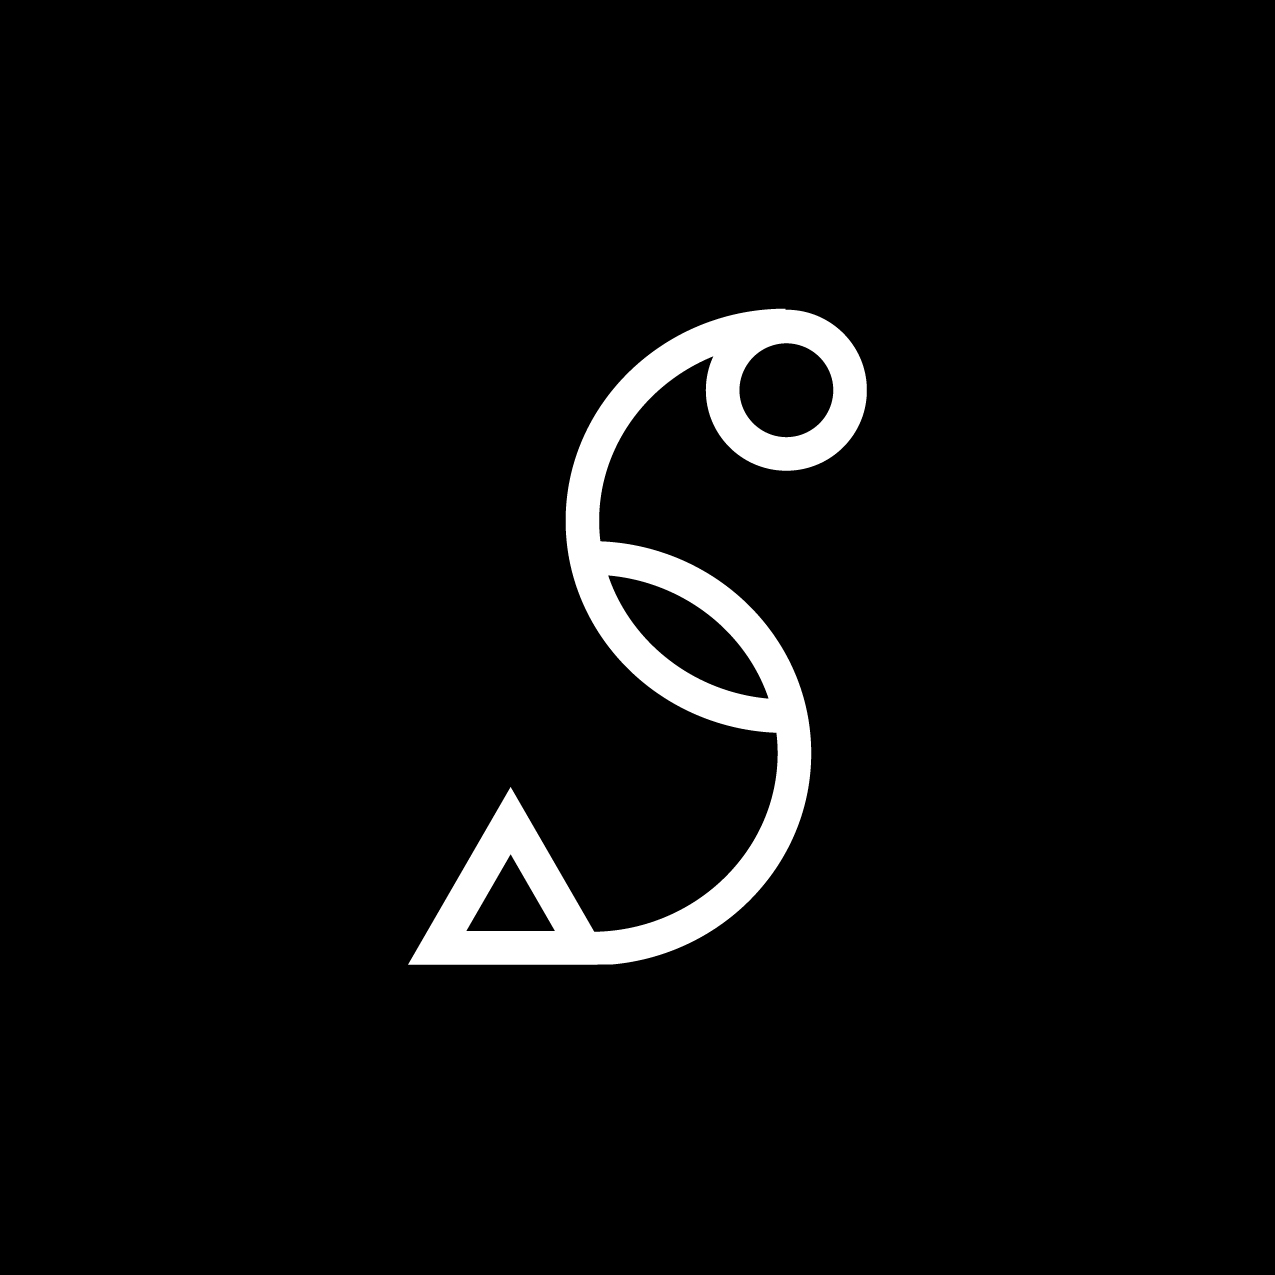 Letter S8 Design by Furia